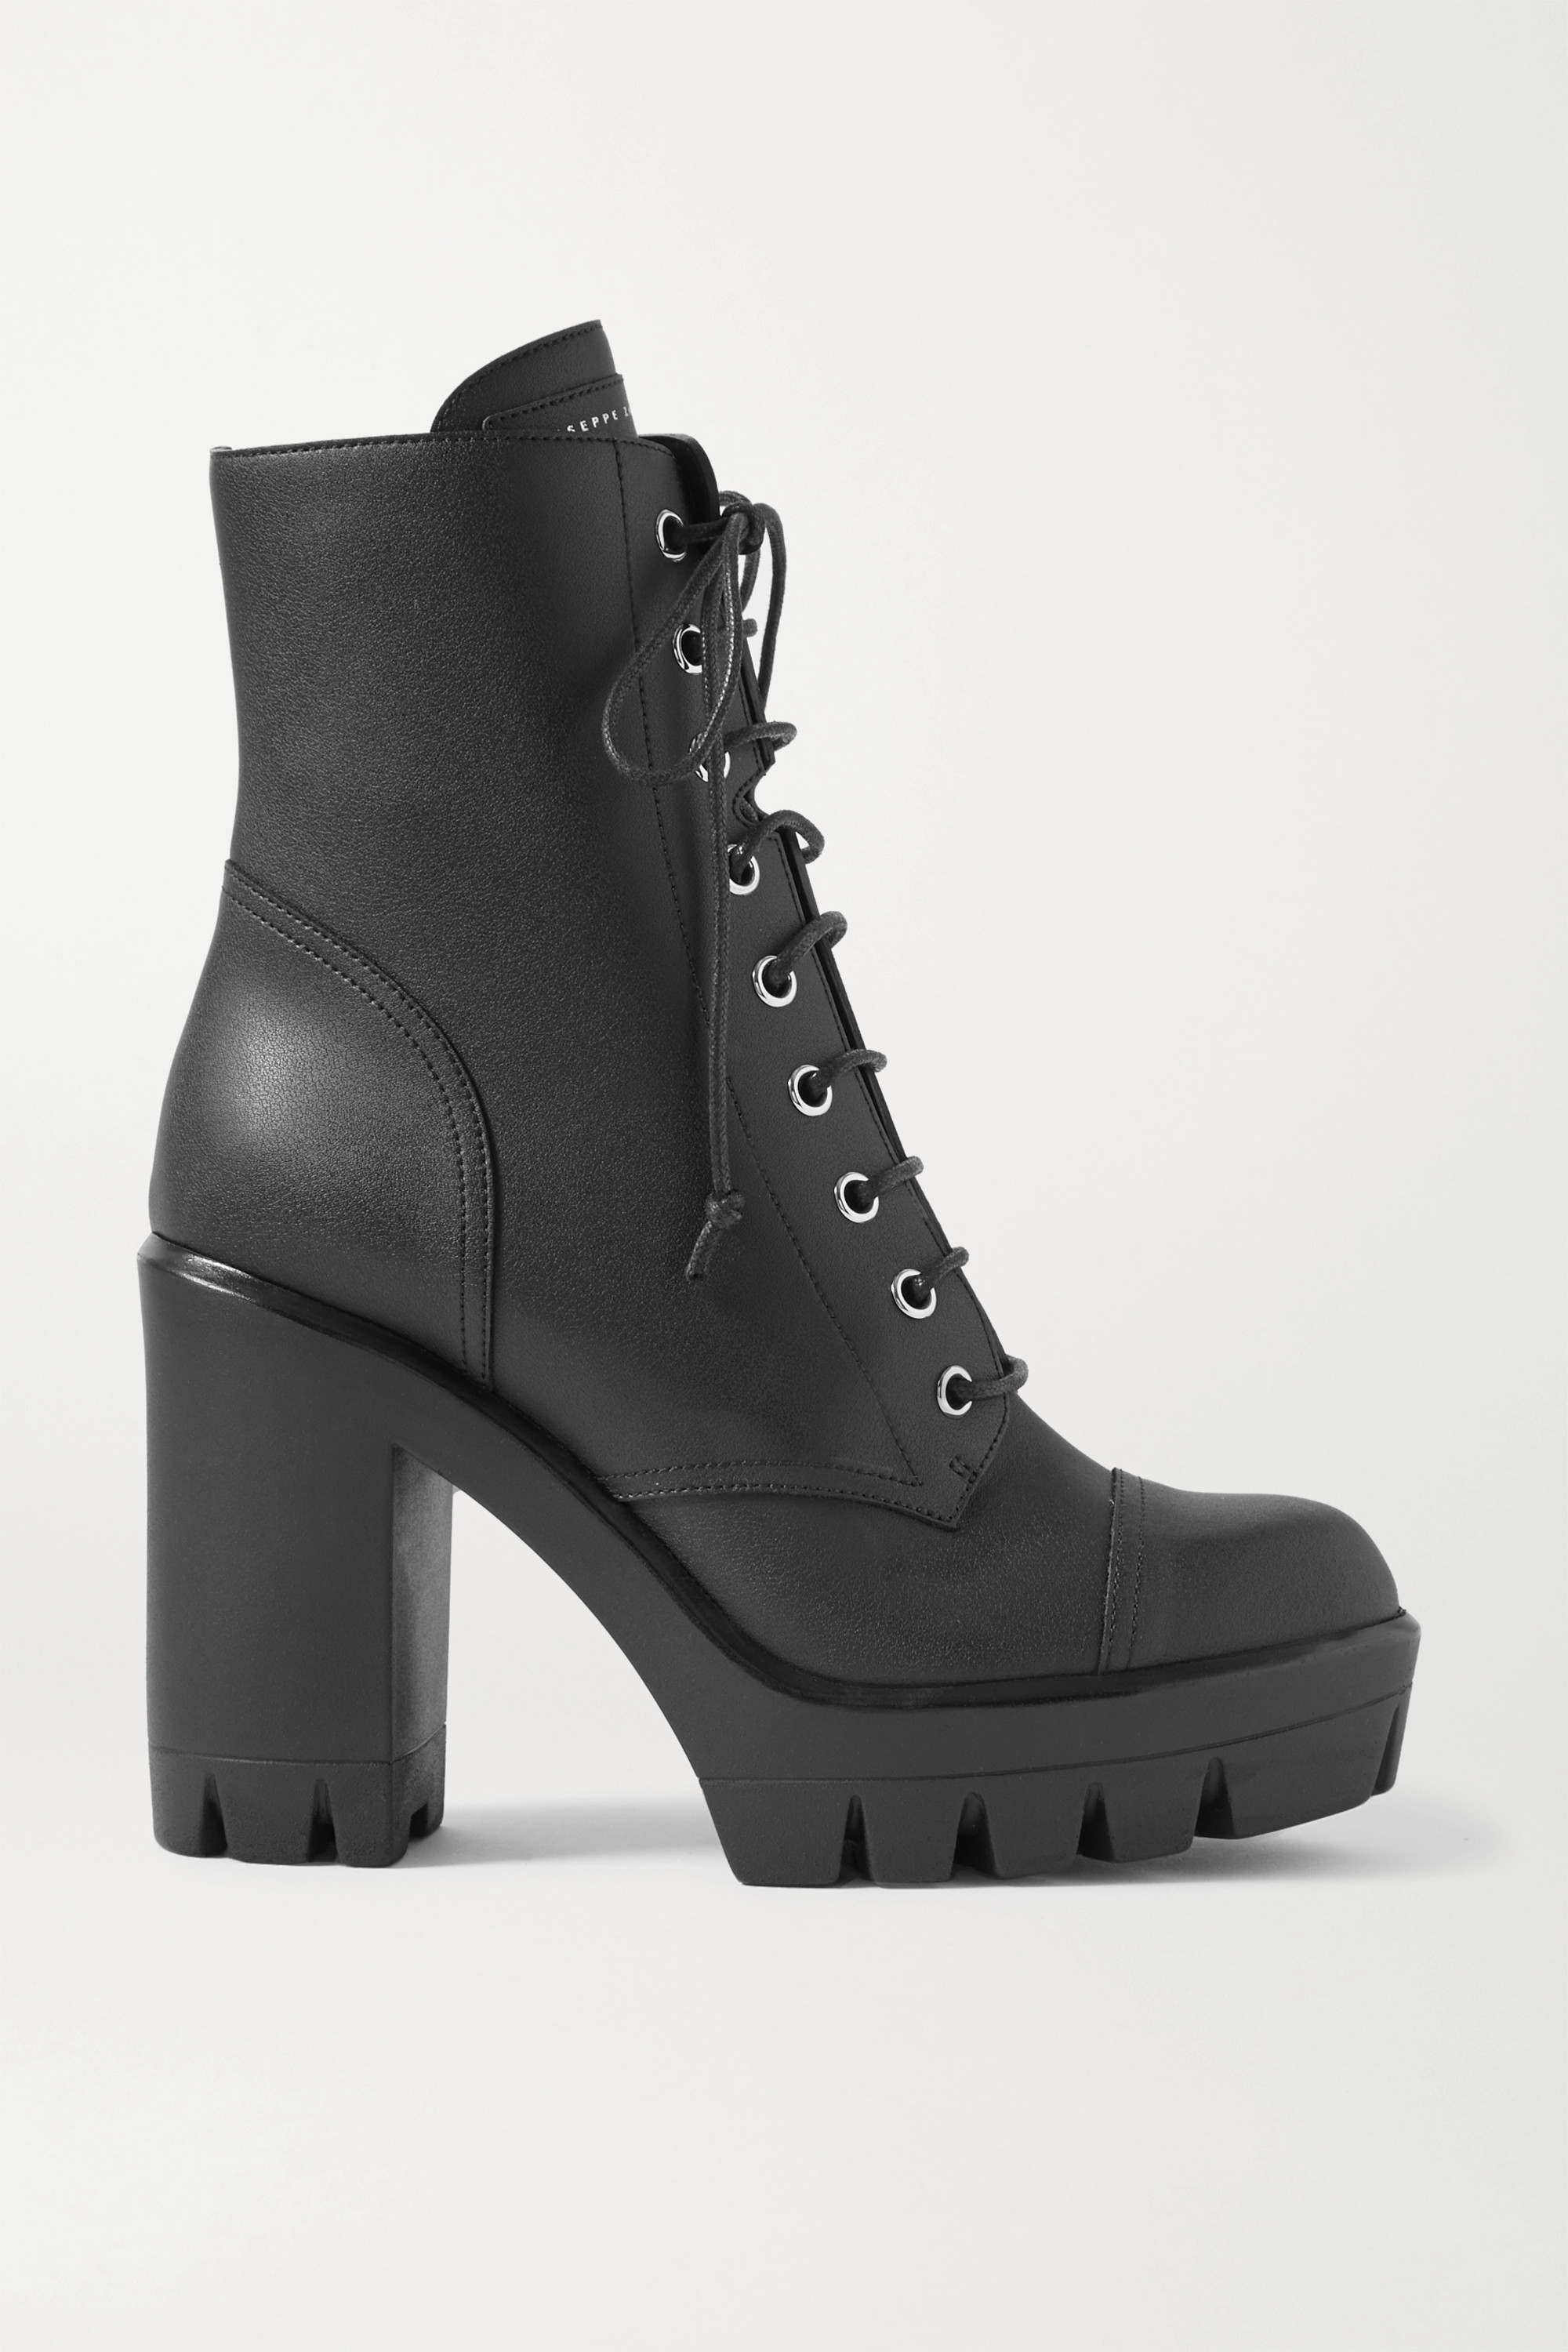 Moyra Leather Combat Boots In Black